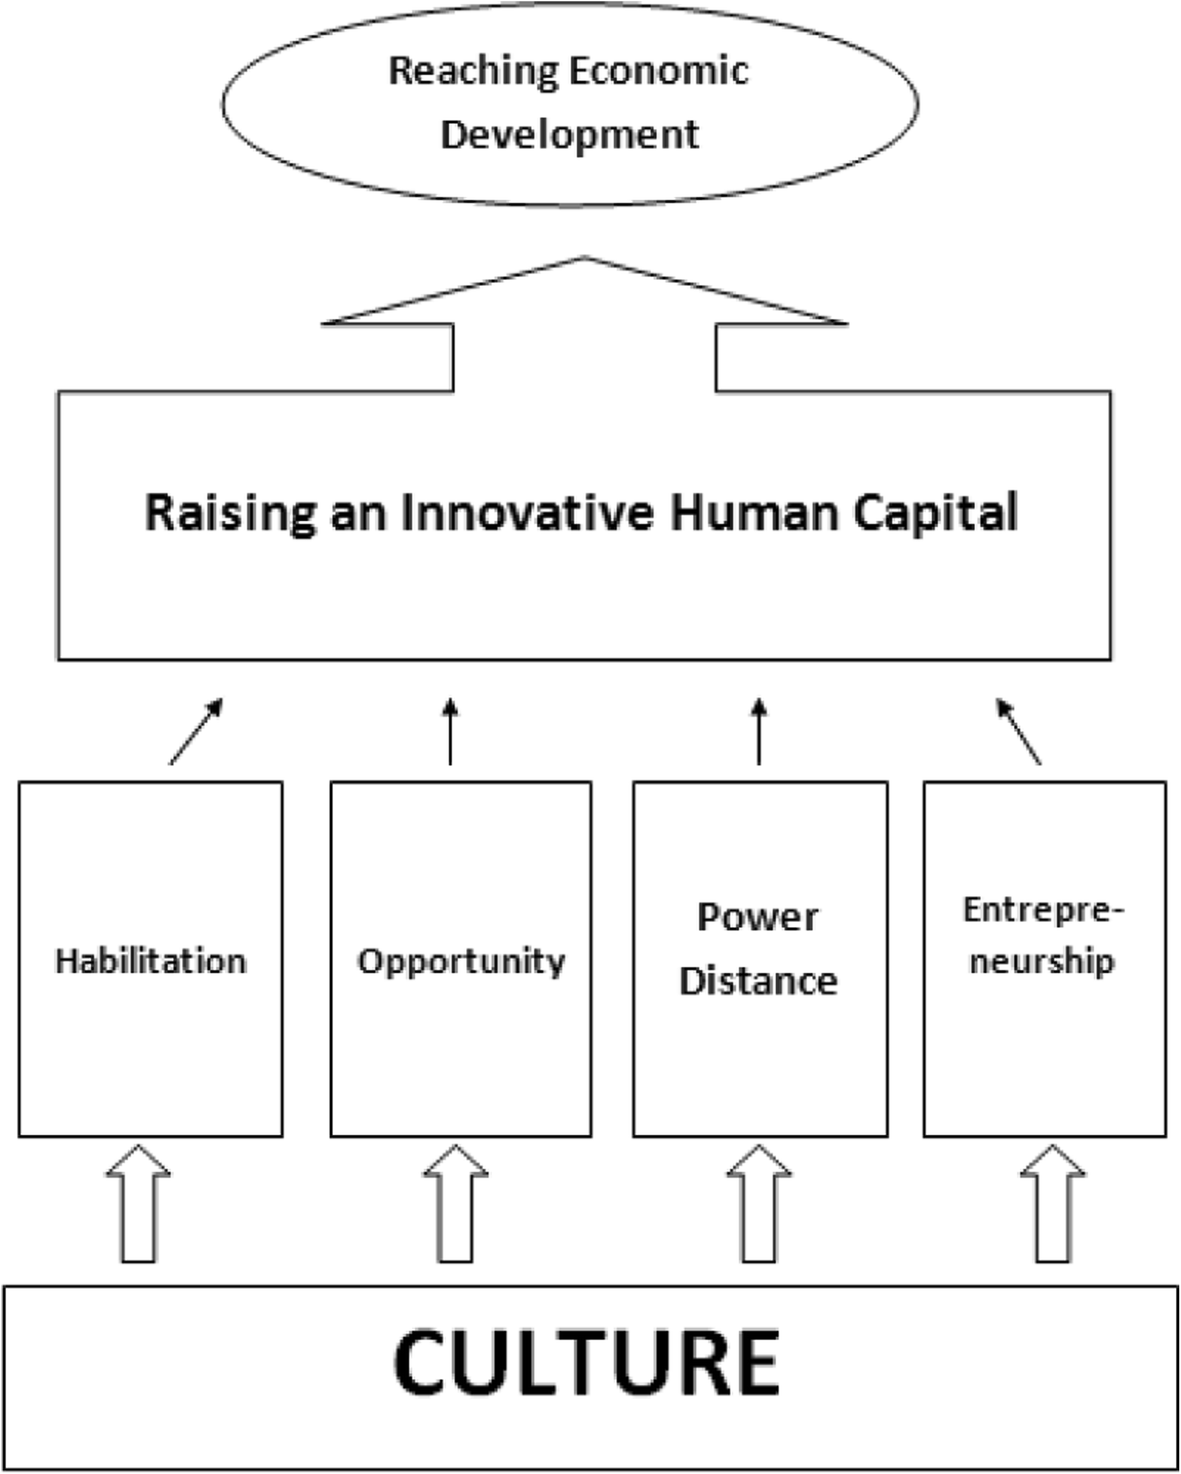 The bilateral relationship between human capital investment